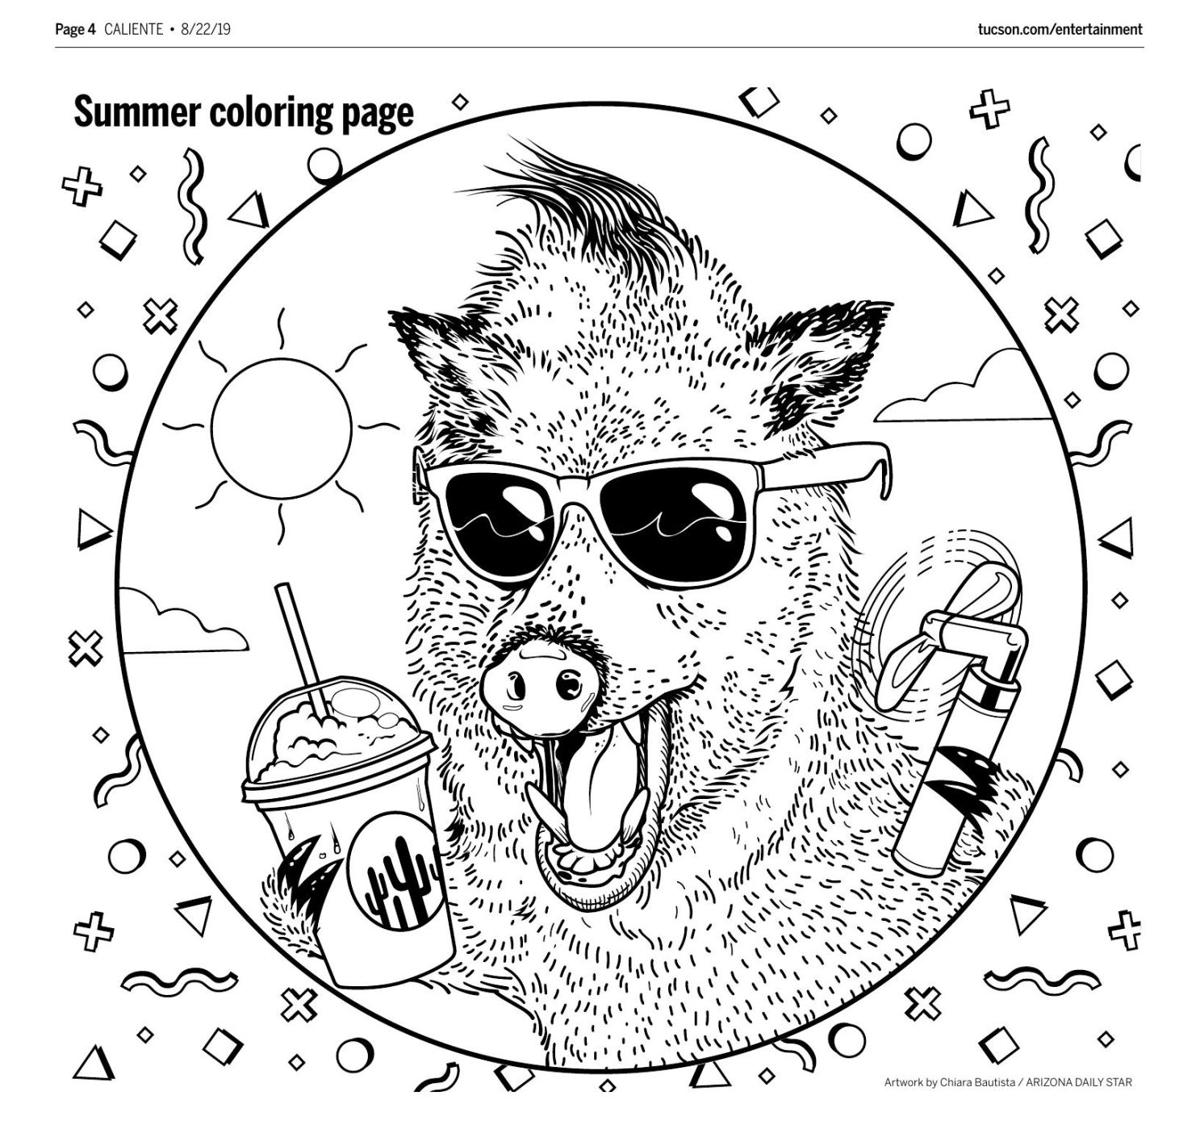 Aug. 22 coloring page